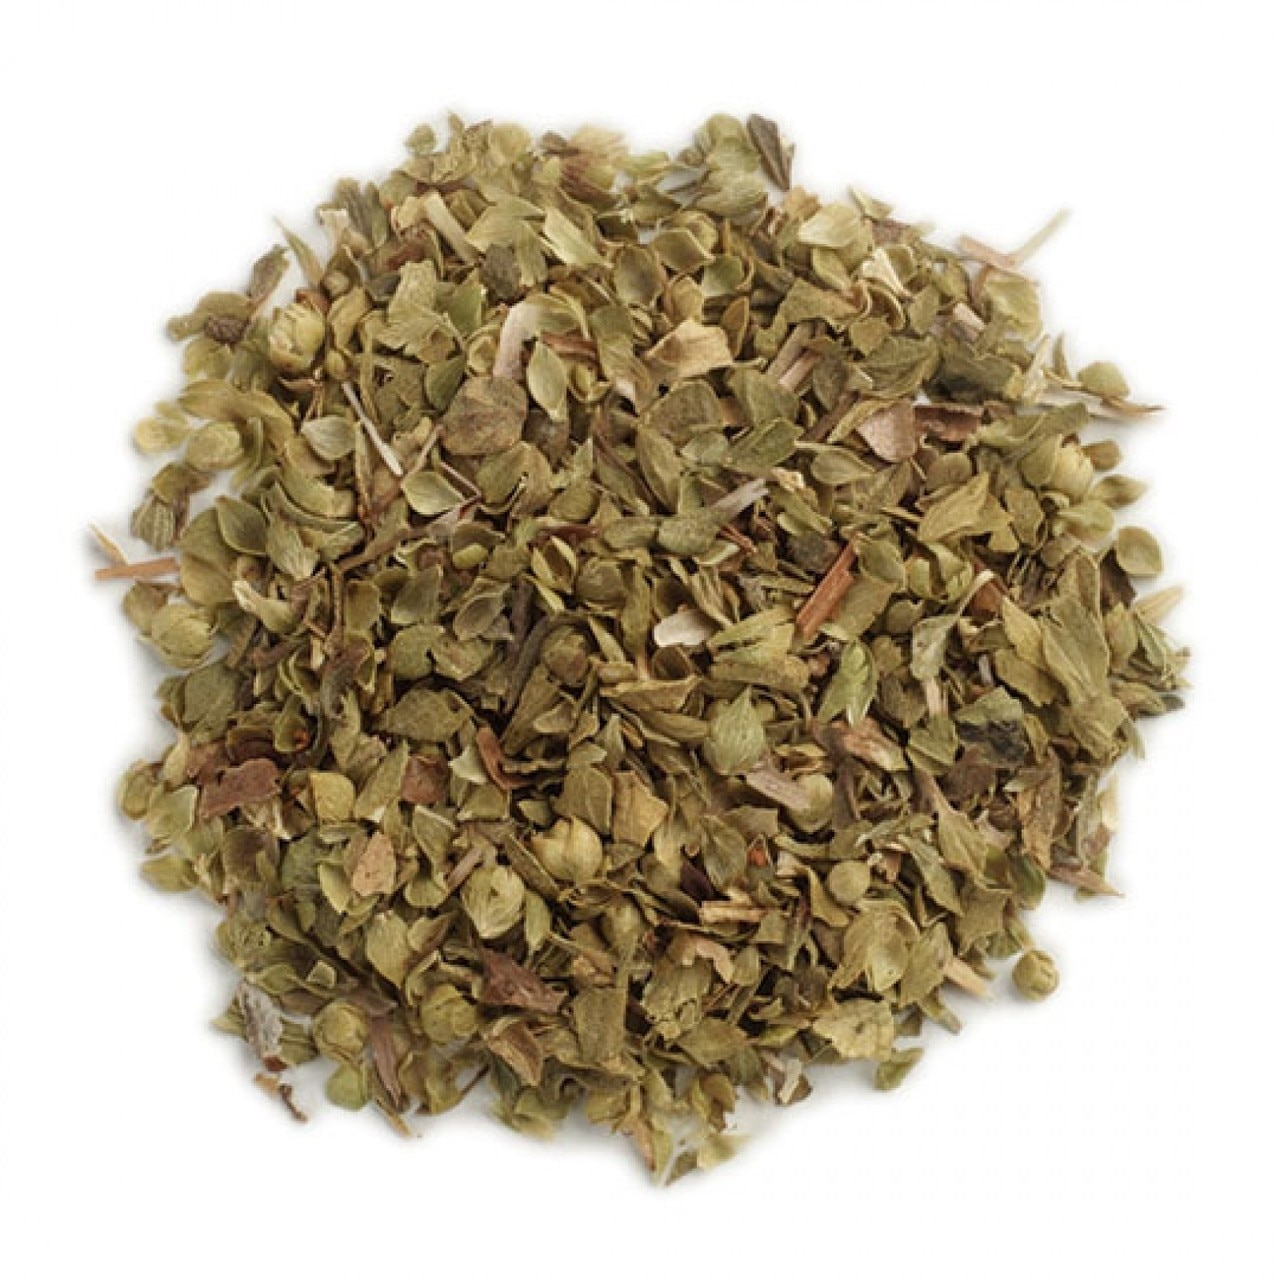 products oregano  73432.1554777180.1280.1280